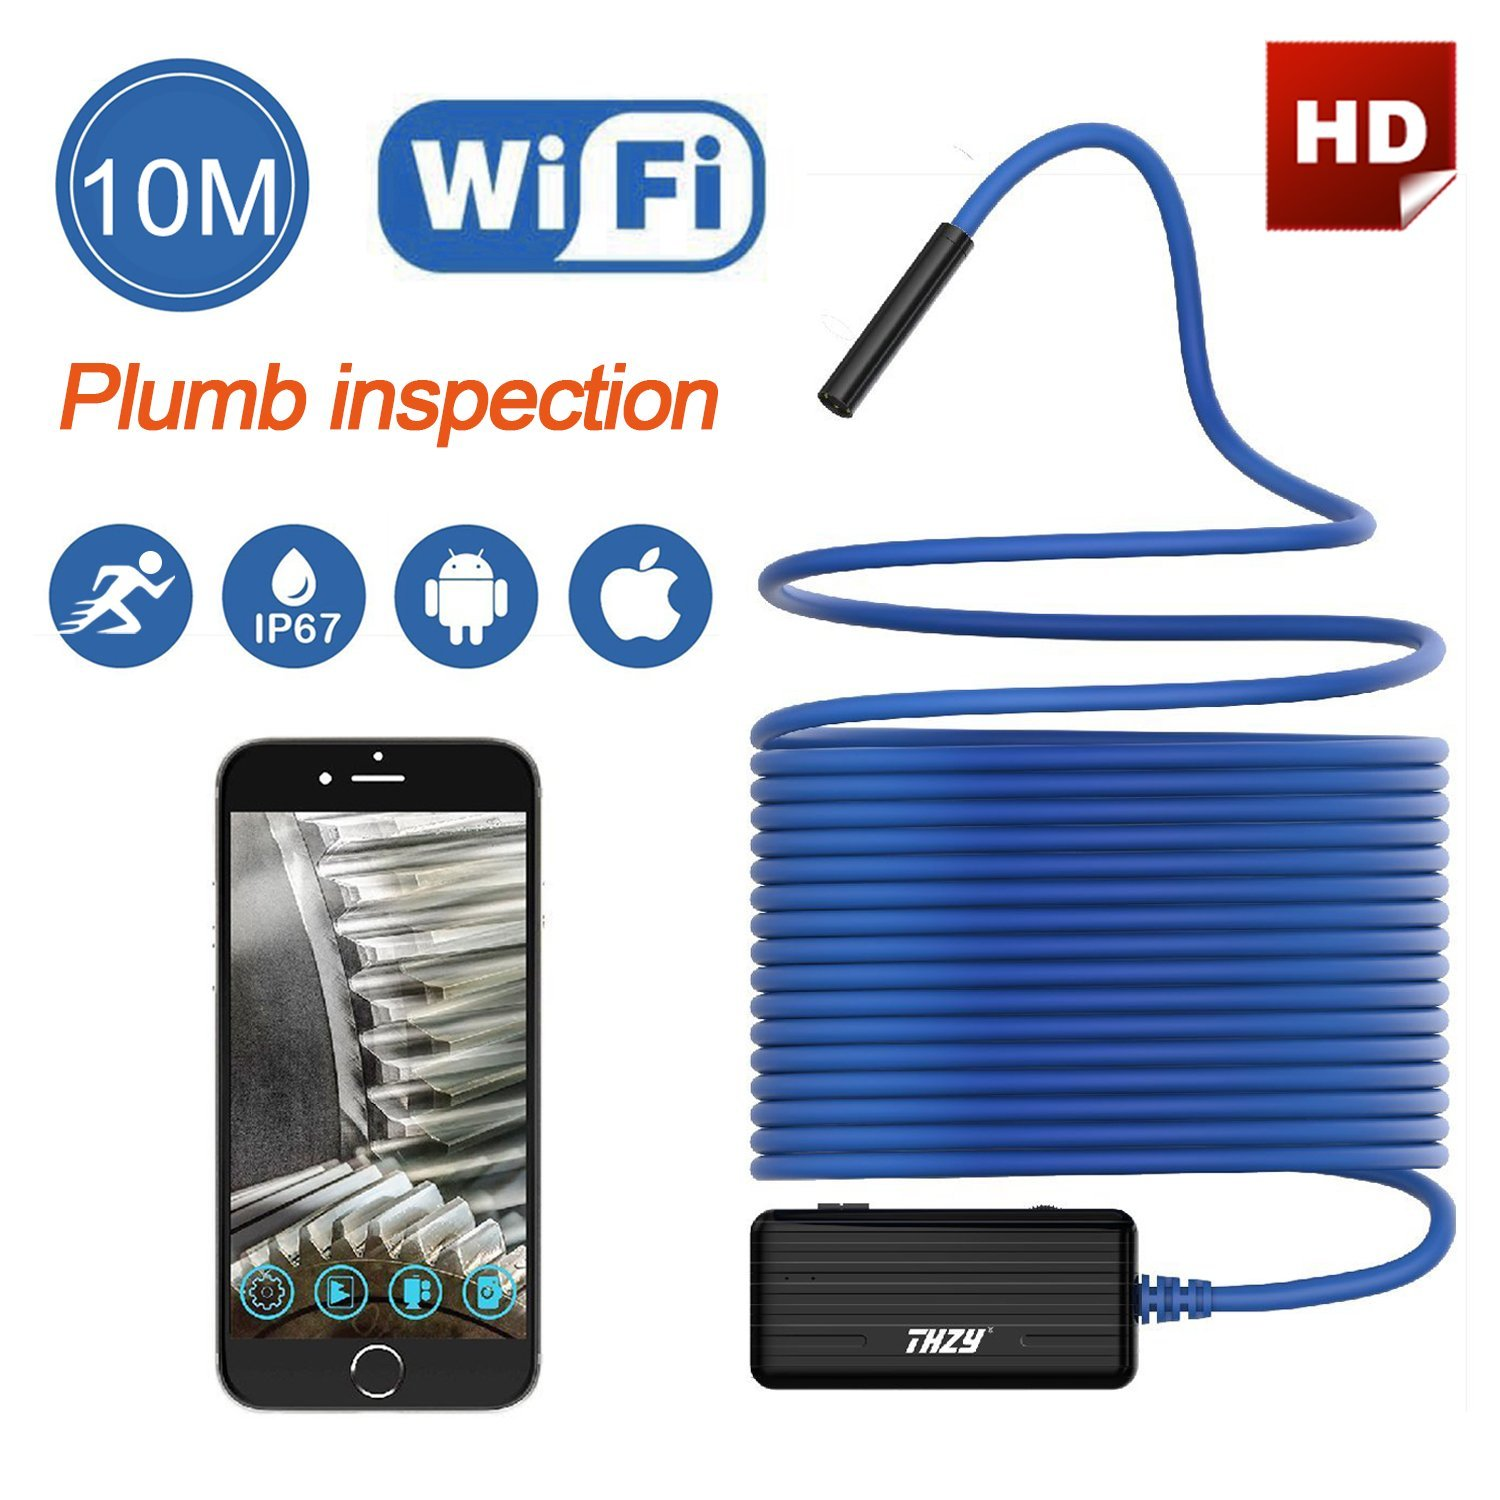 THZY Wireless Endoscope WiFi Borescope Inspection Camera 2.0 Megapixels HD Snake Camera for Android IOS Smartphone, iPhone 10M mool 10m wifi usb waterproof borescope hd endoscope inspection camera for android ios